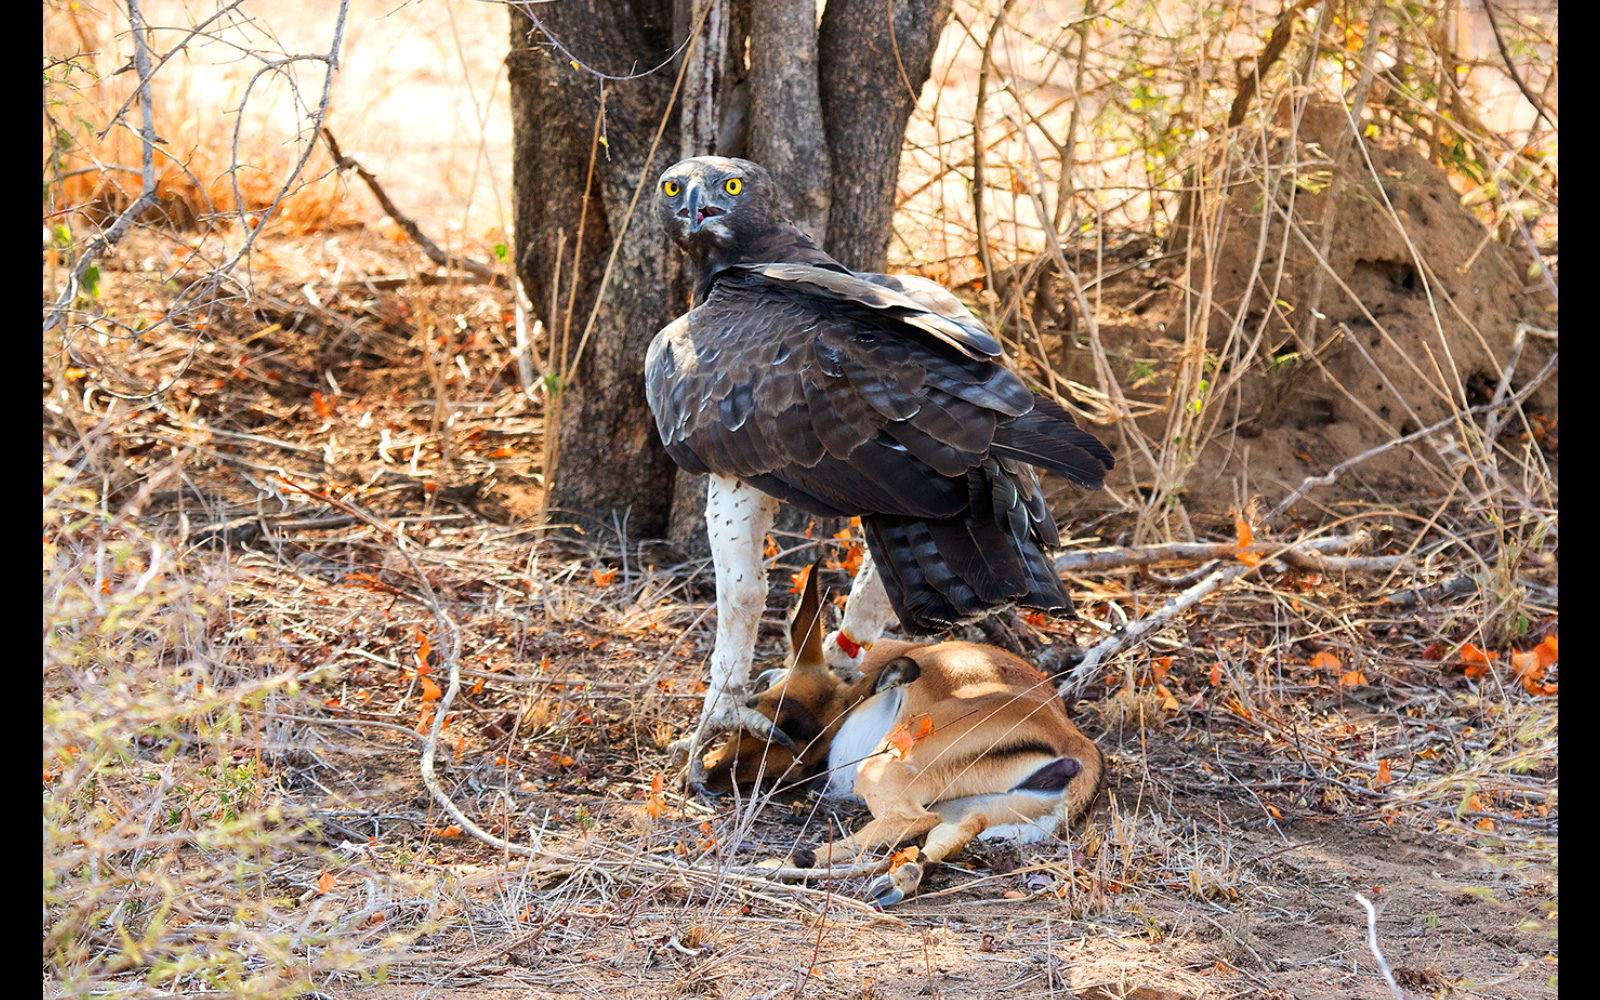 A martial eagle with its prey, an impala calf, in Kruger National Park, South Africa © Logan Weavind